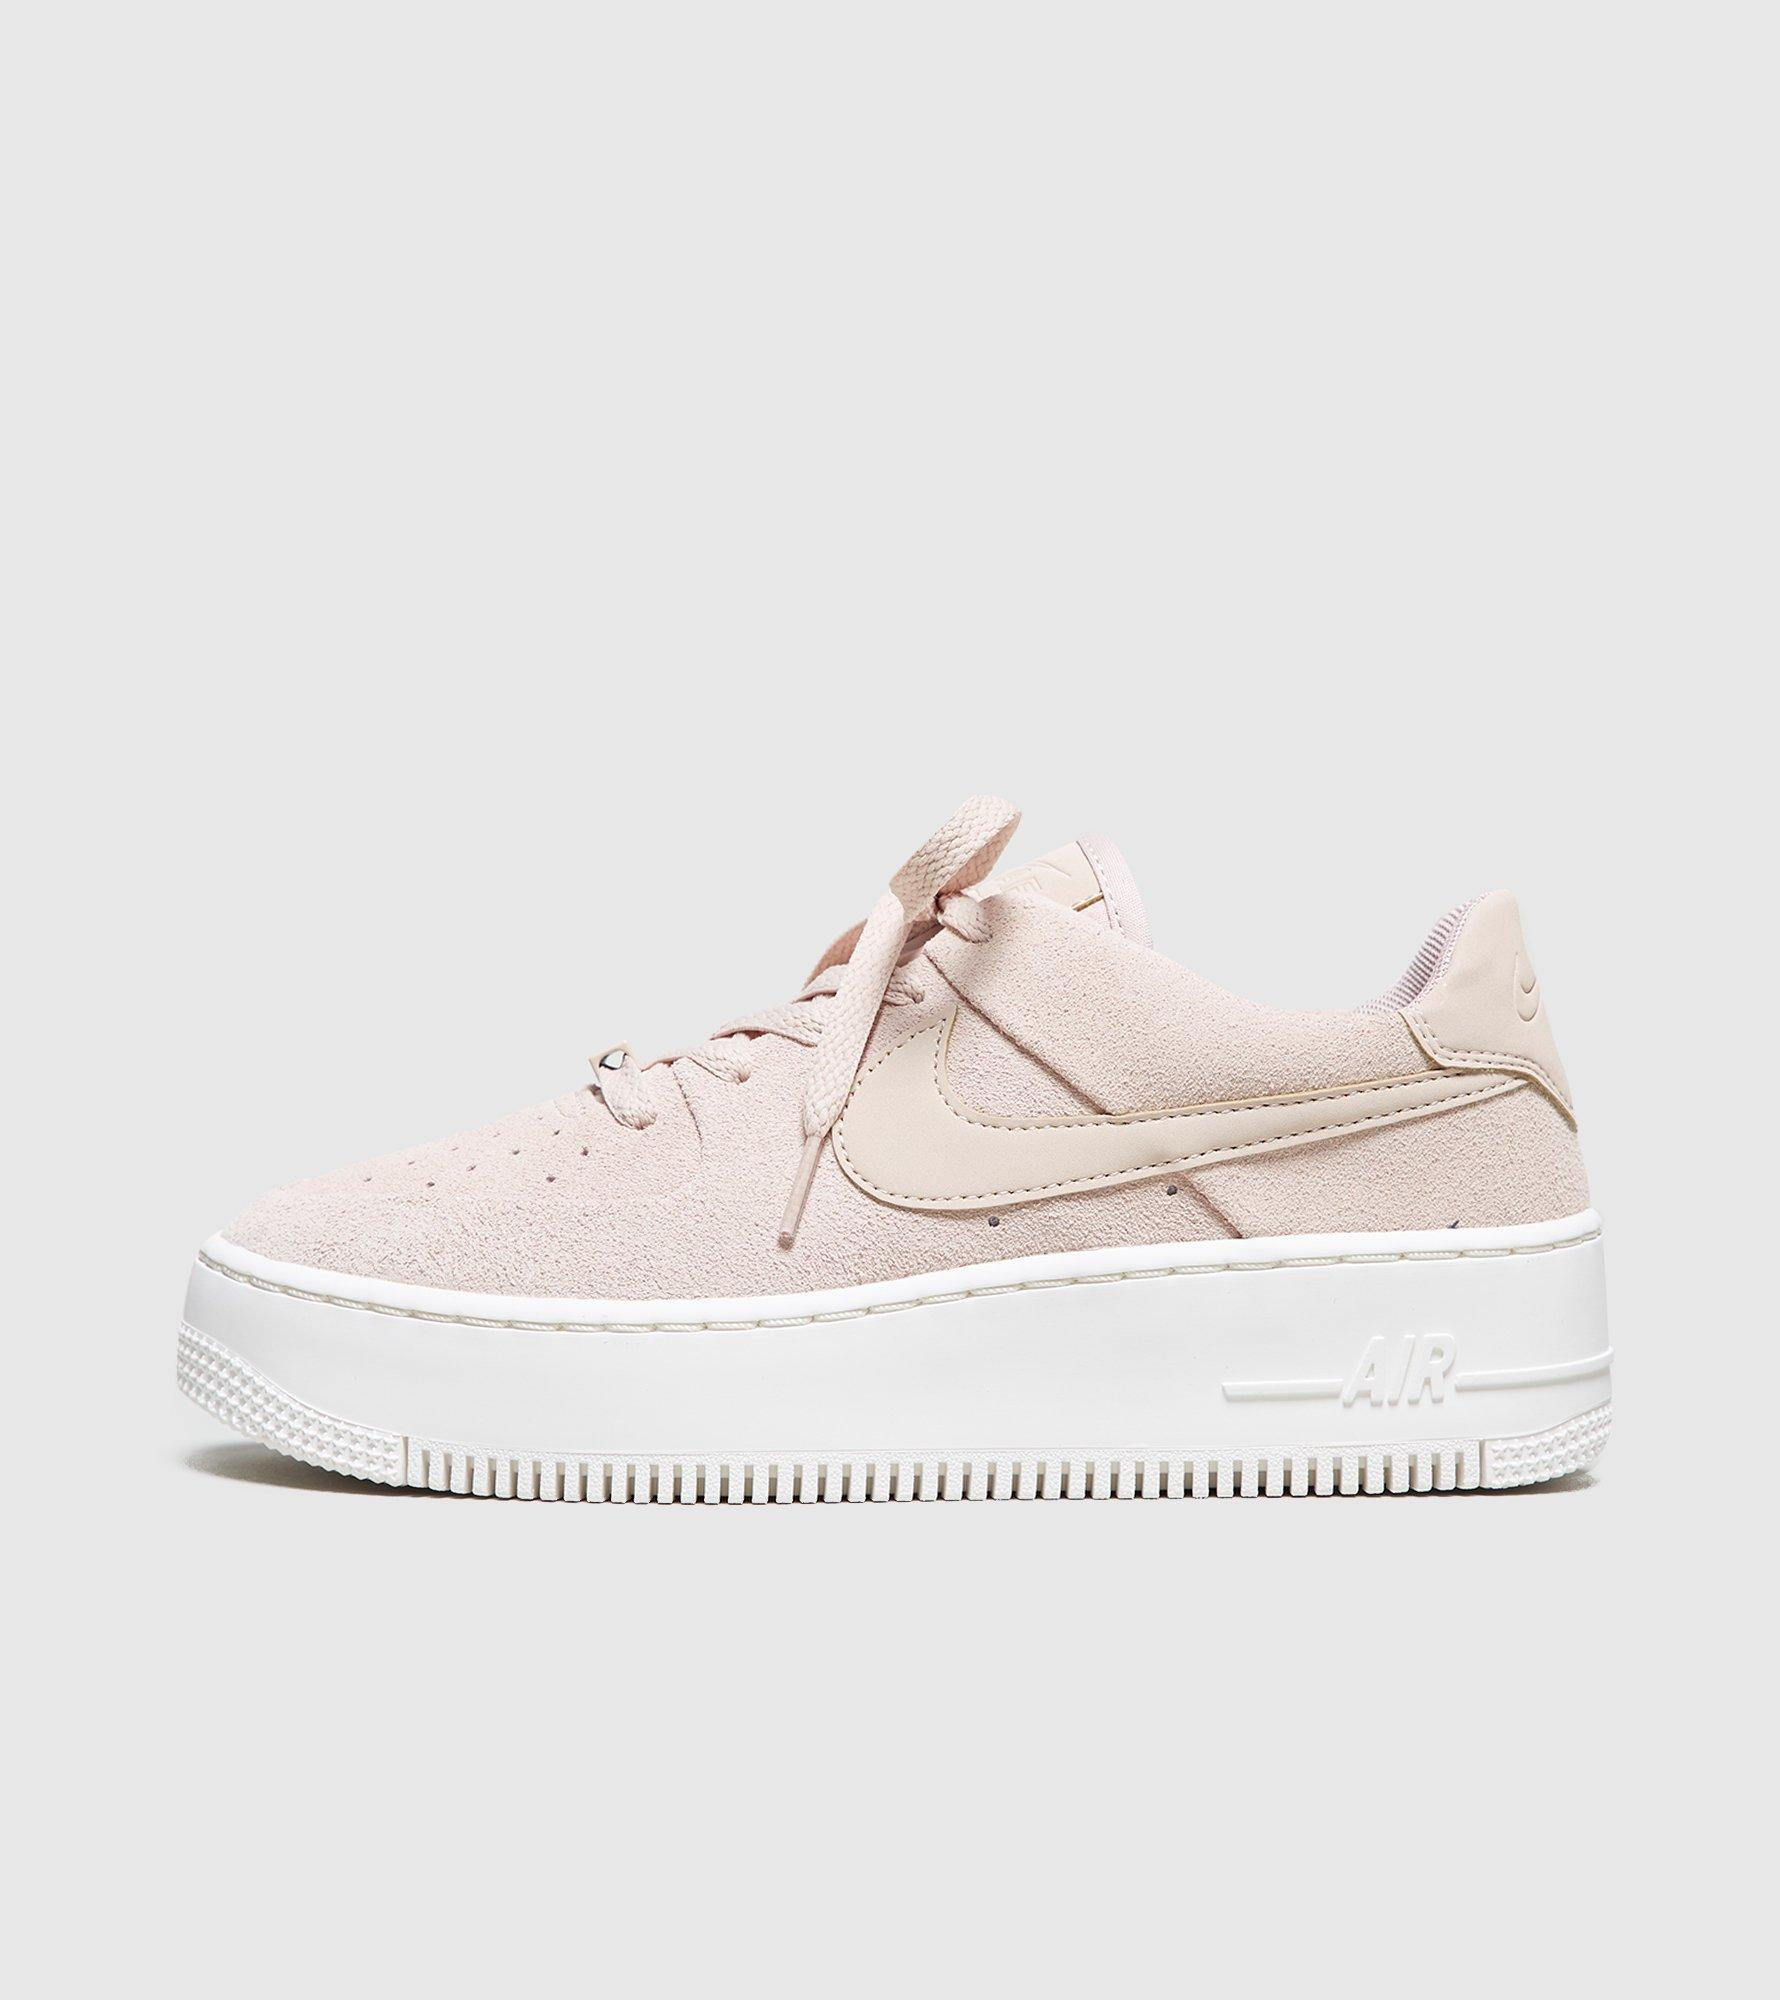 b6a13ed50cd1 Lyst - Nike Air Force 1 Sage Low Women s in Natural